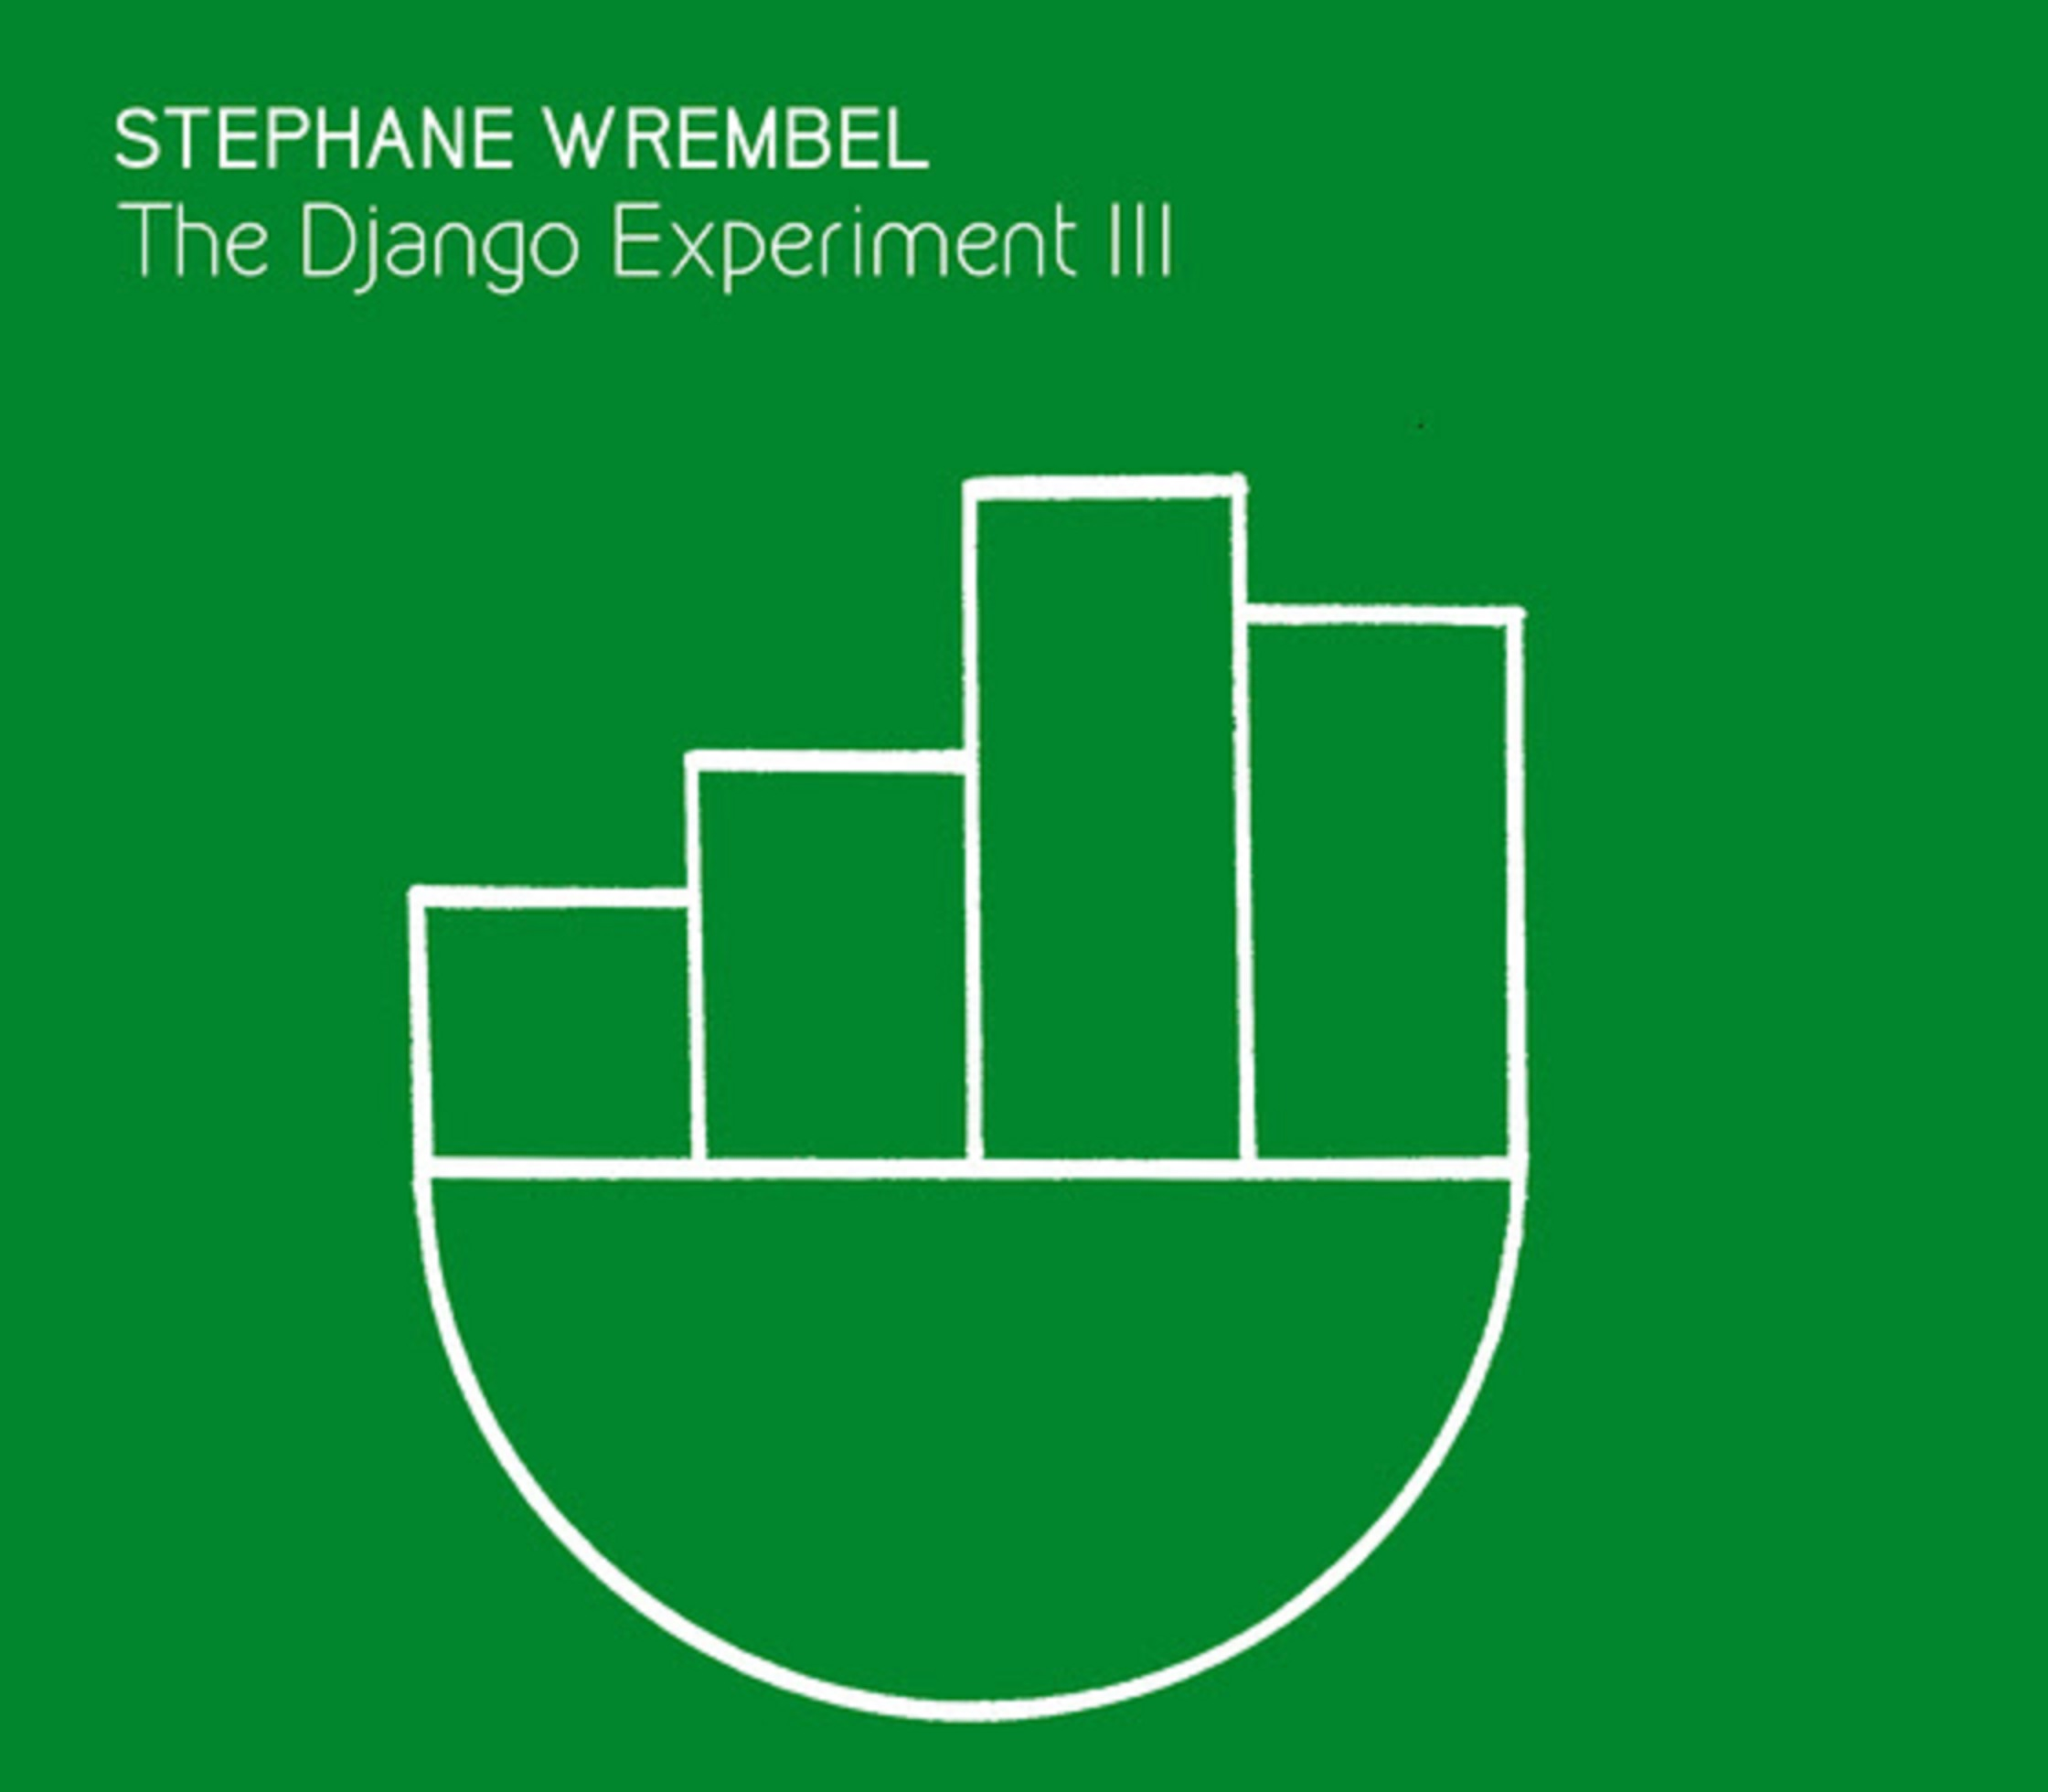 Stephane Wrembel to release The Django Experiment III